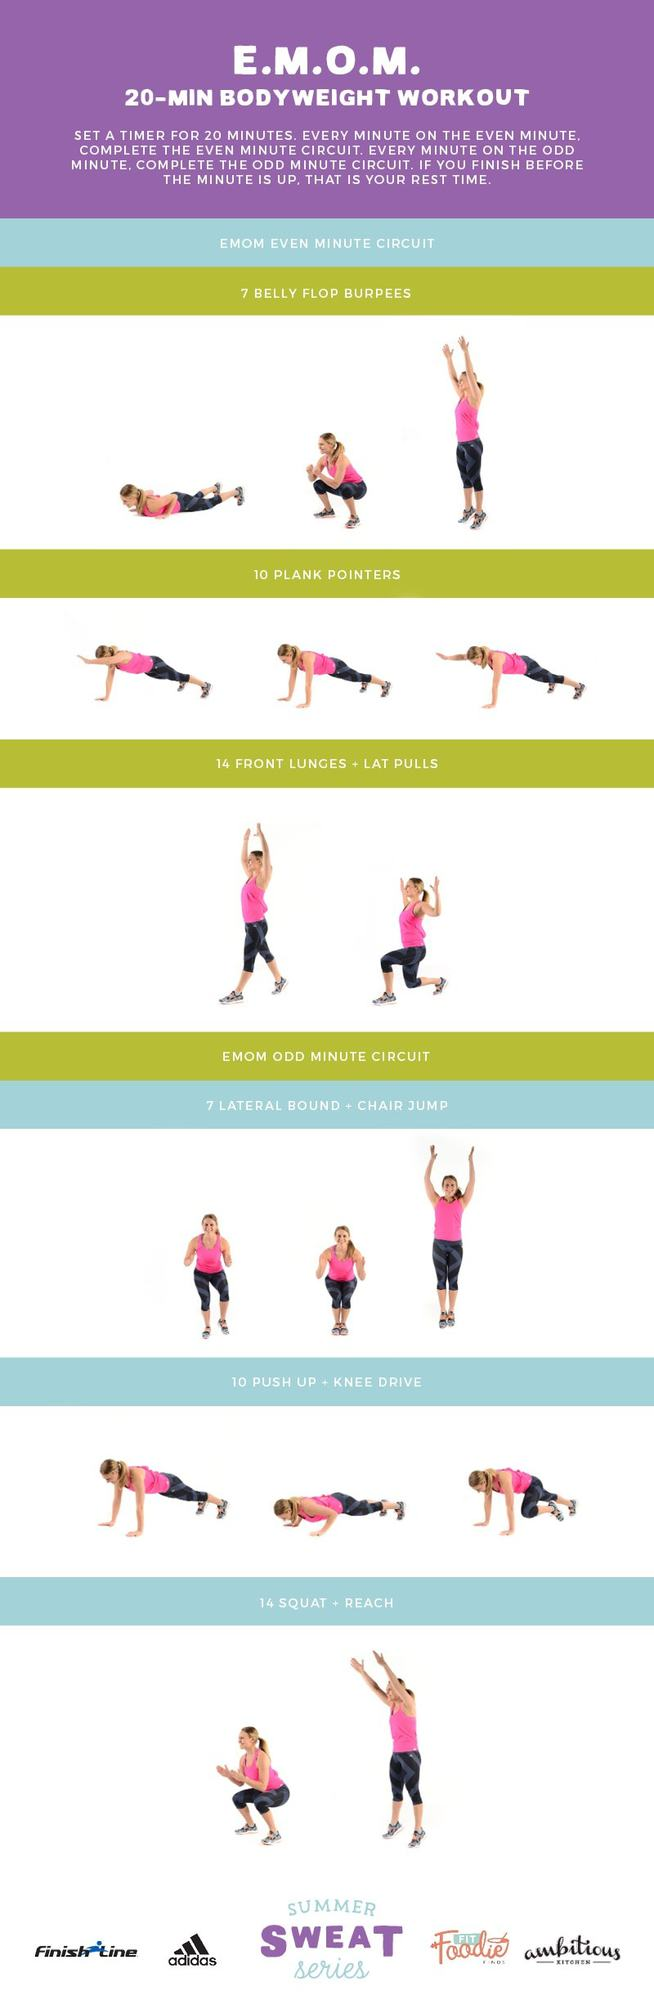 This EMOM (Every Minute On the Minute) 20-Minute Workout requires only your bodyweight and will get your heart pounding!